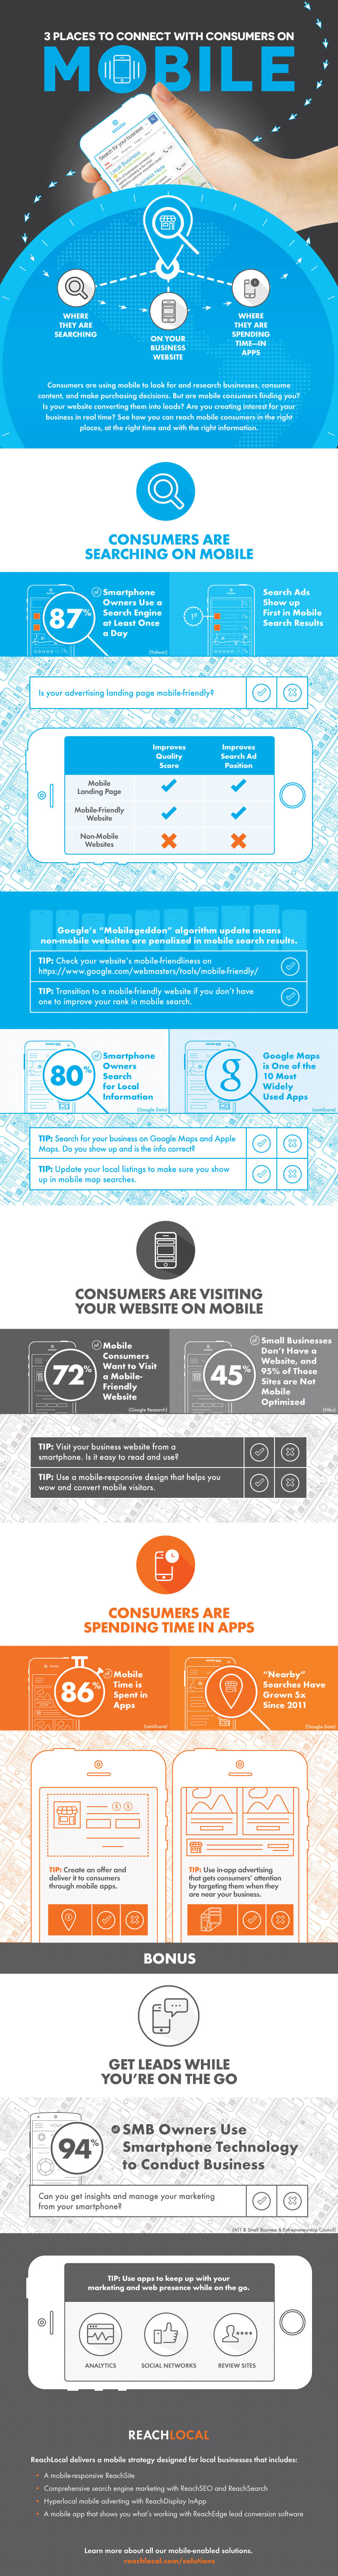 3 Places Small Businesses Can Connect with More Consumers on Mobile infographic